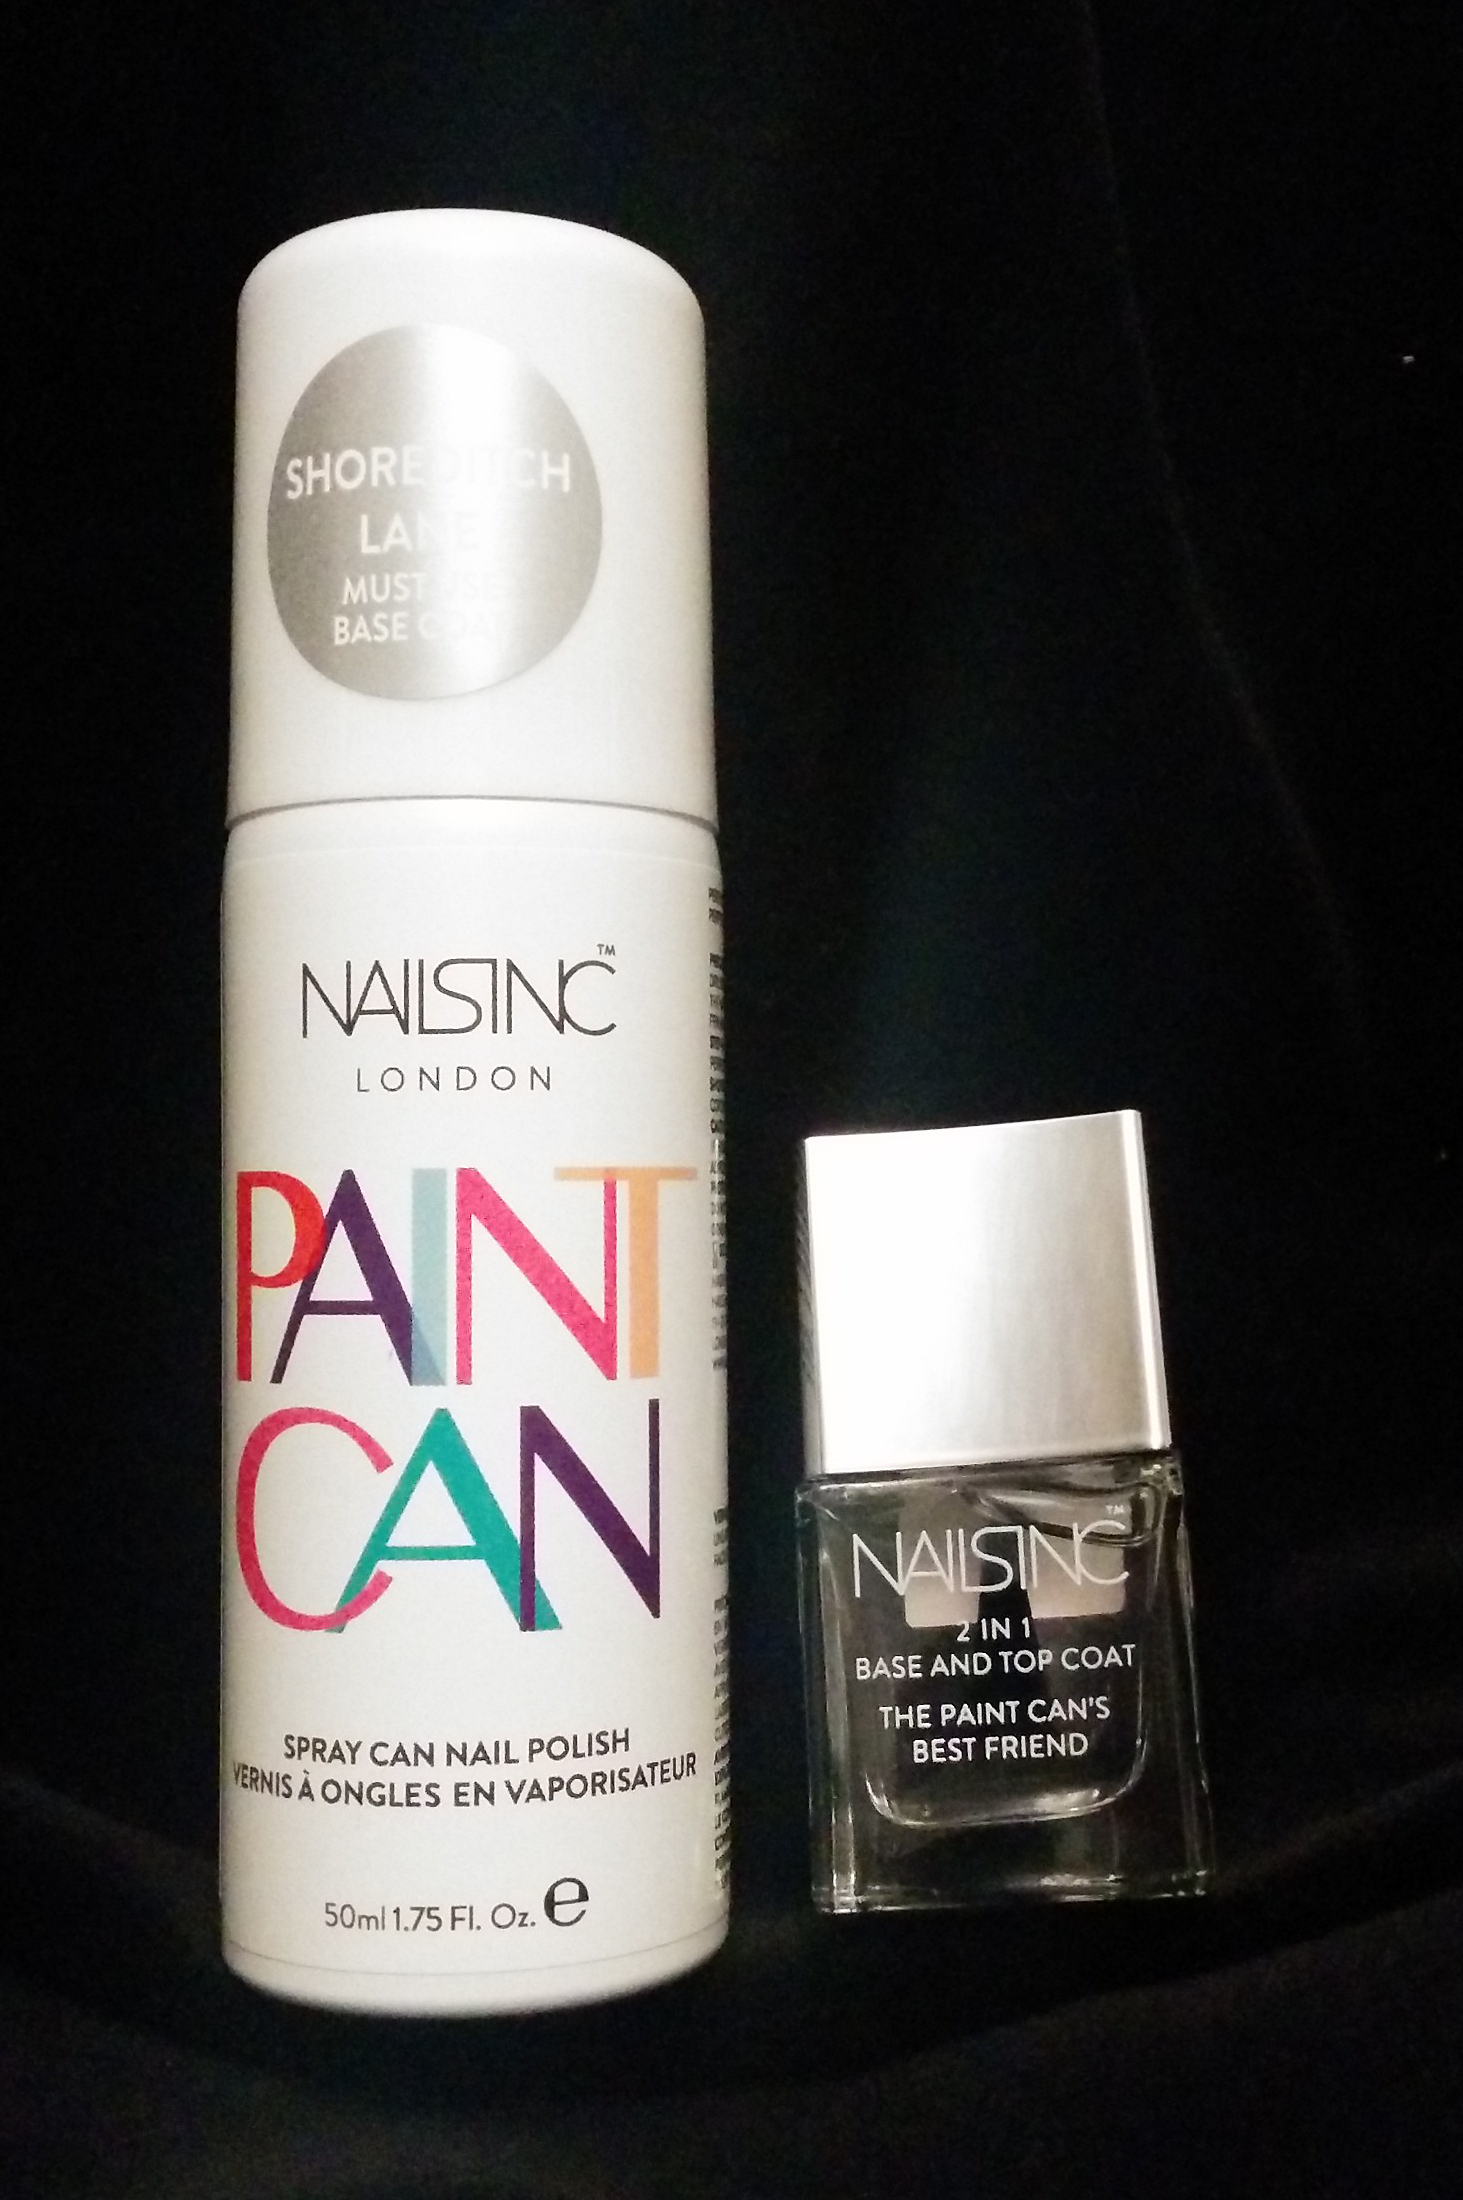 Does it work nails inc paint can spray on nail - Nails Inc Paint Can Shoreditch Lane Spray On Nail